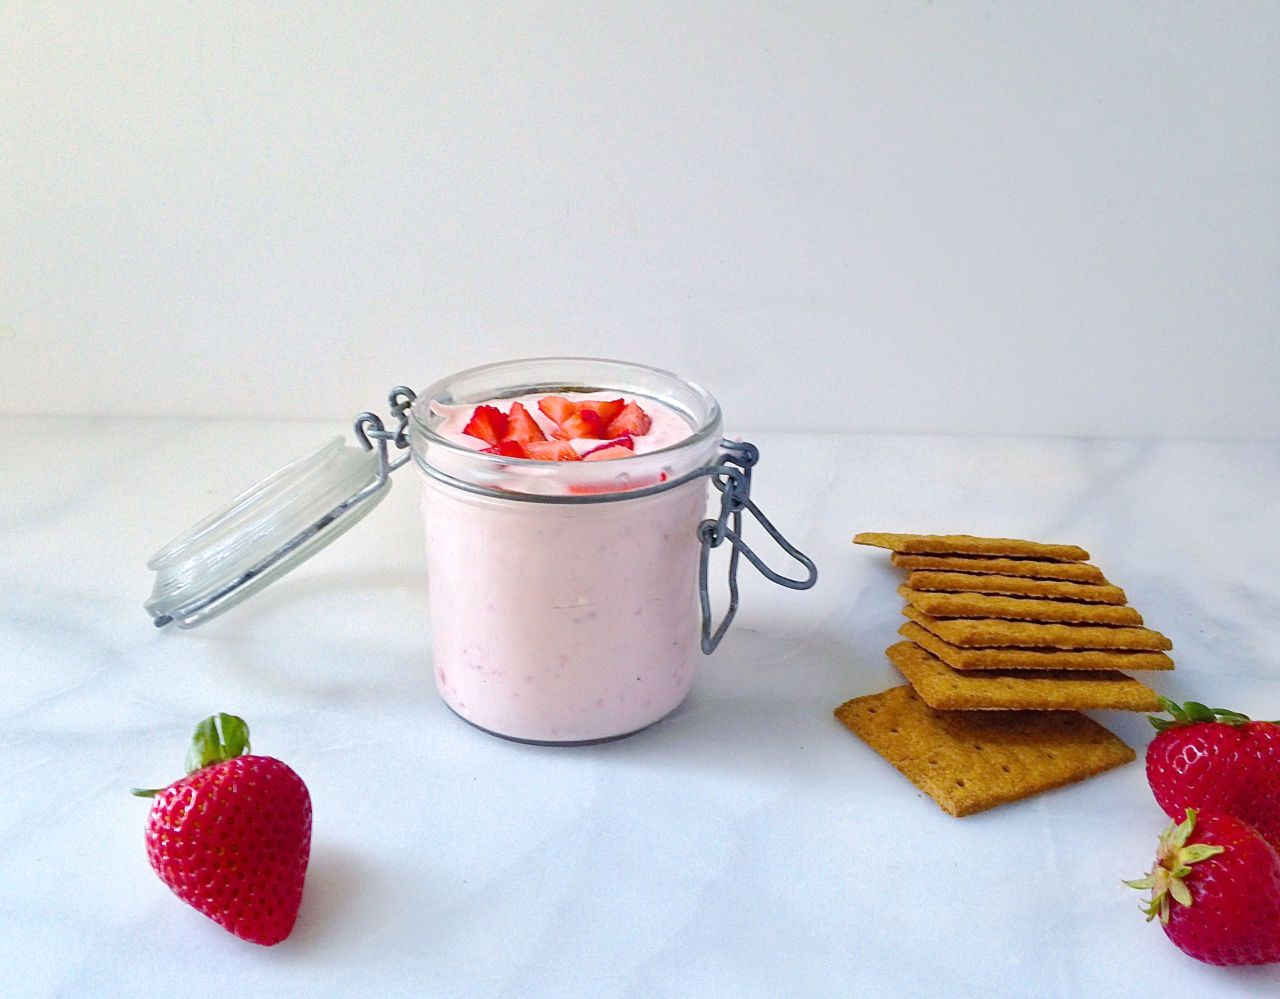 Strawberry Cheesecake Dip - Delish.com, How To Make Cheesecake Dip - Delish.com